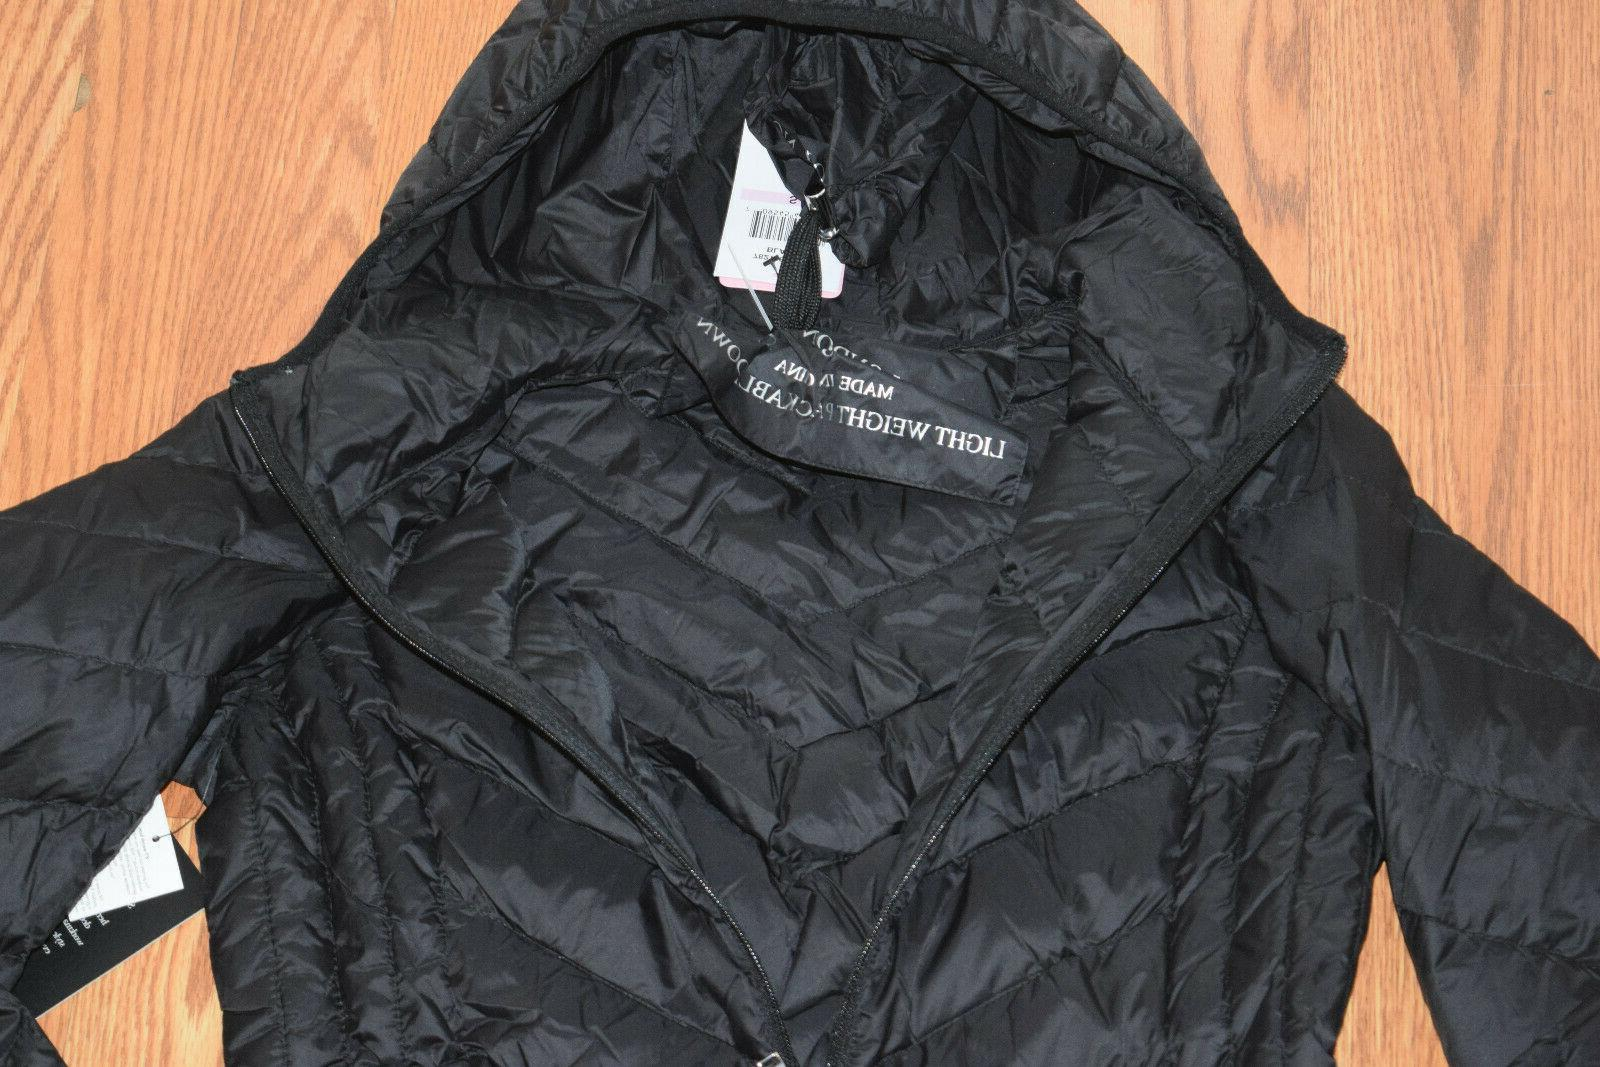 NWT LONDON Black Packable Jacket Small